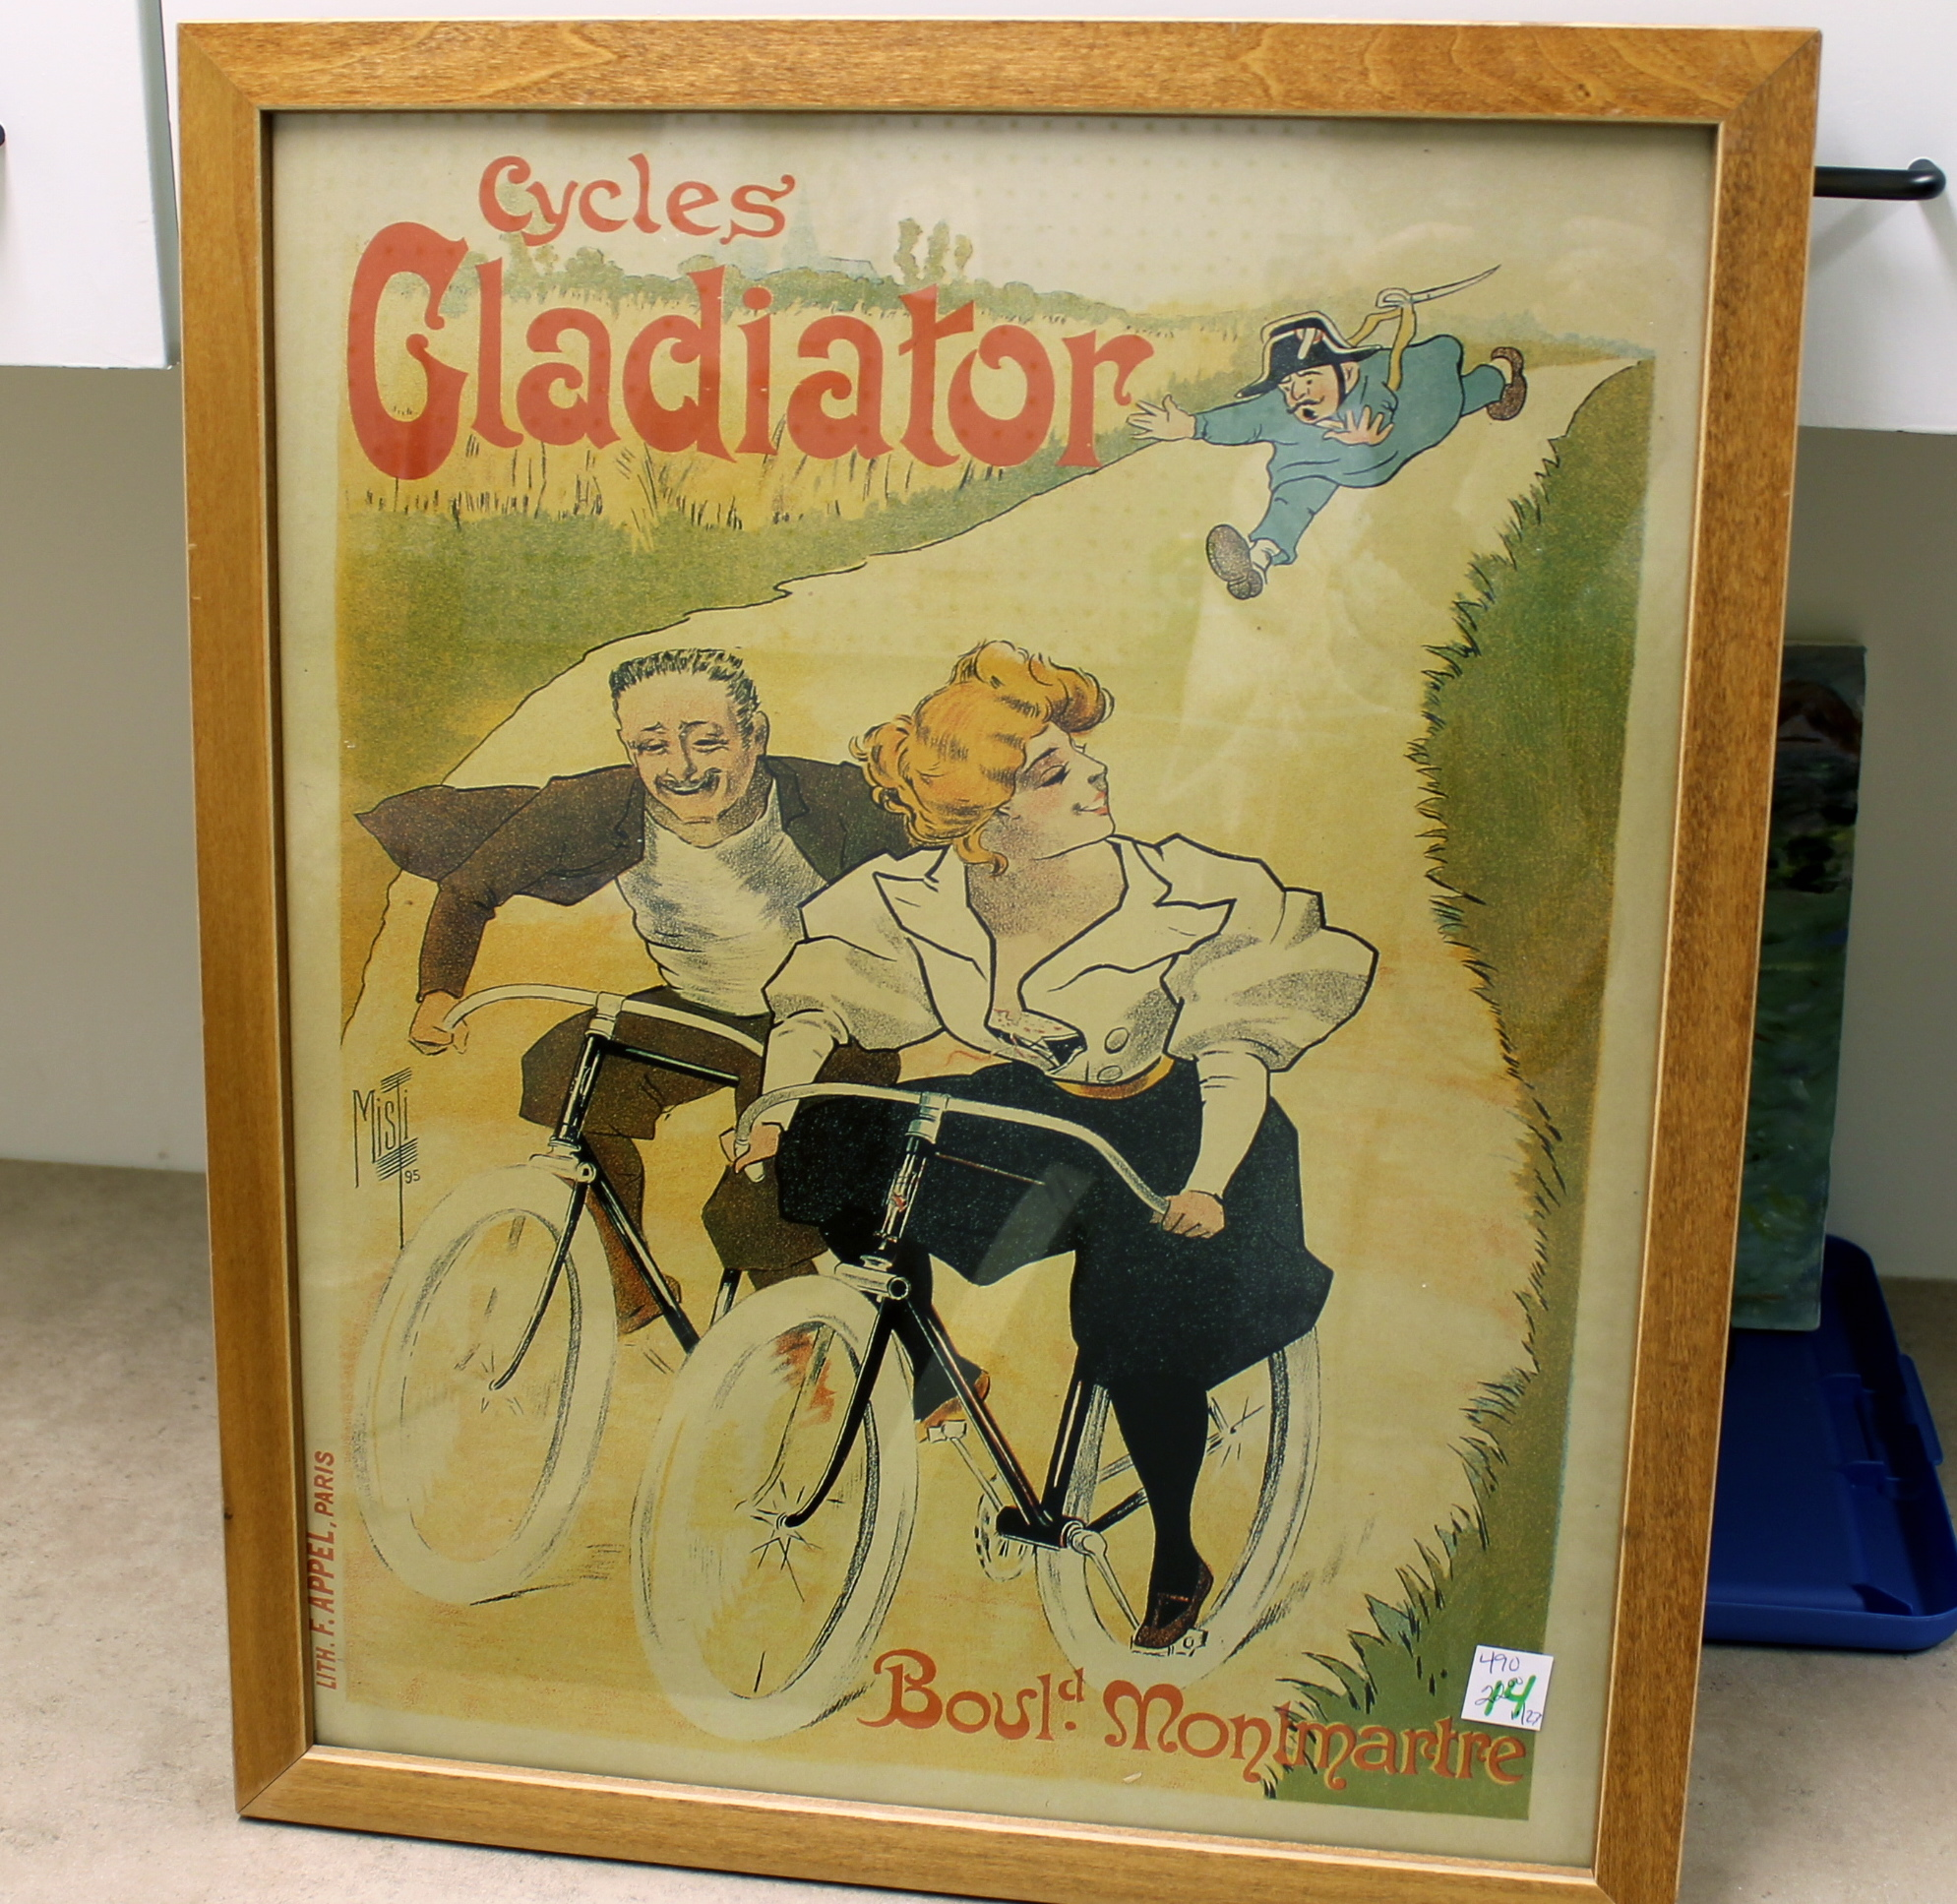 IMG 2076 - Cycles Gladiator Poster Bargain